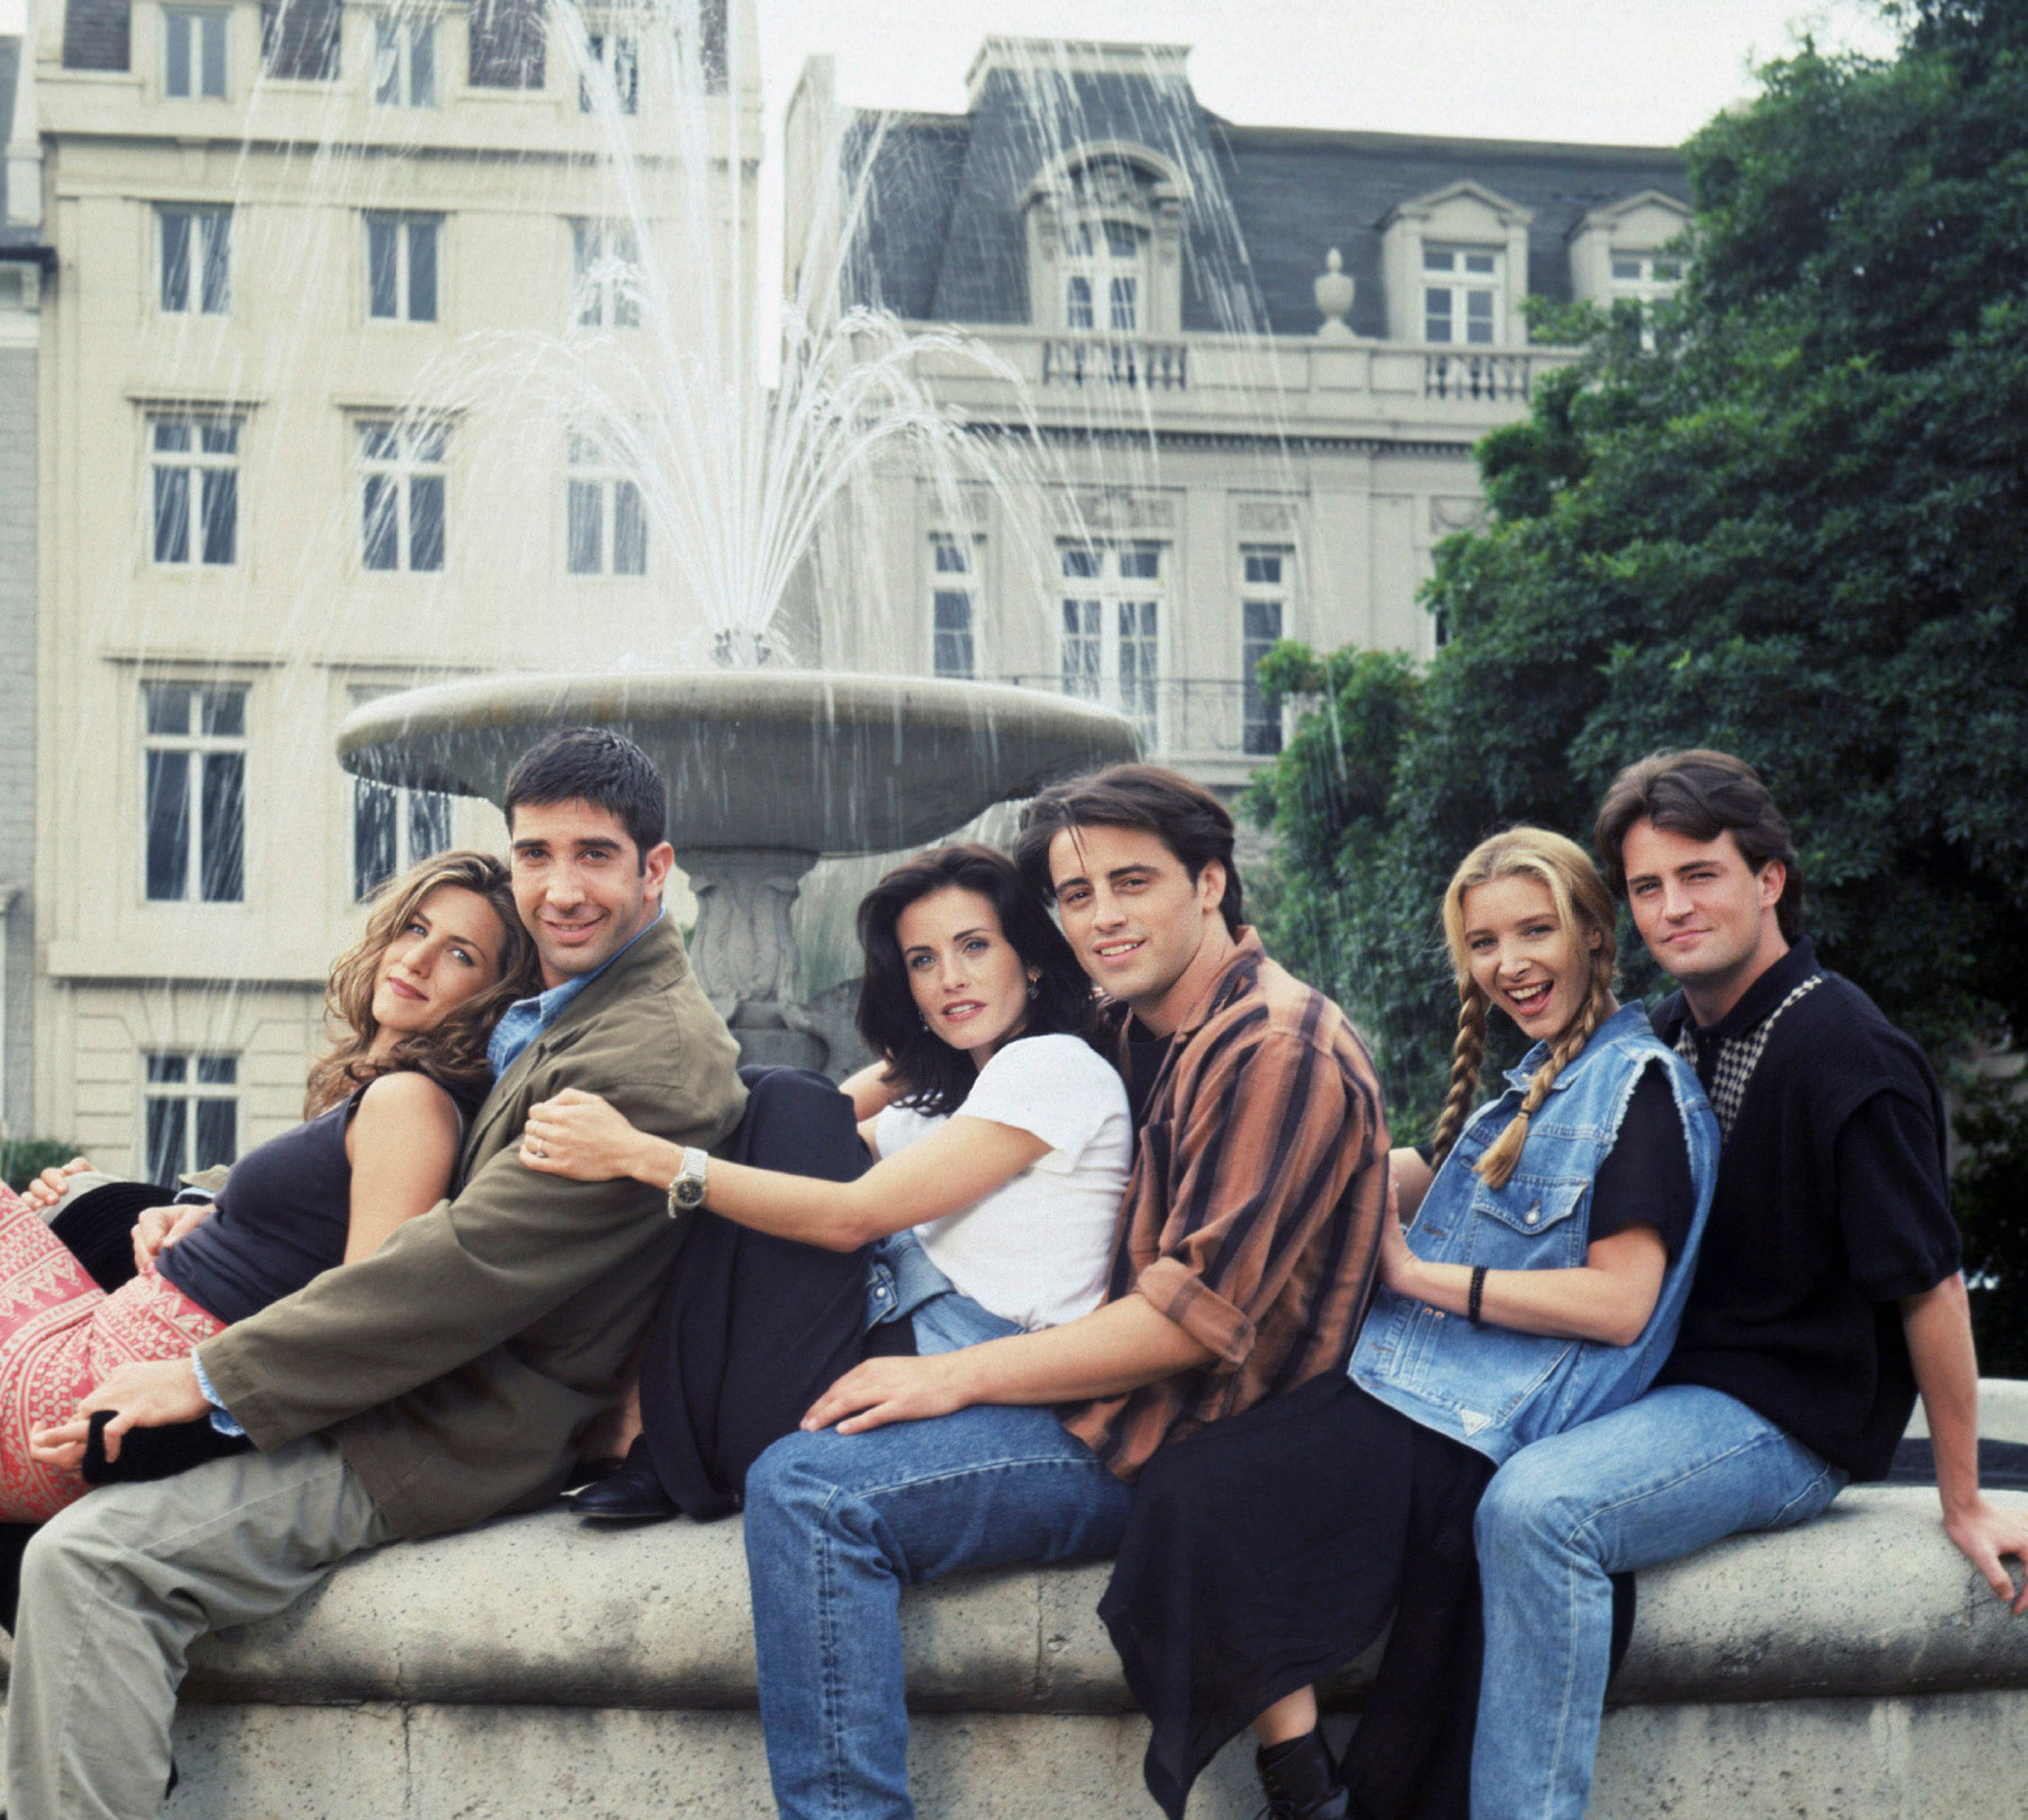 Fans are waiting for the Friends reunion / Getty Images